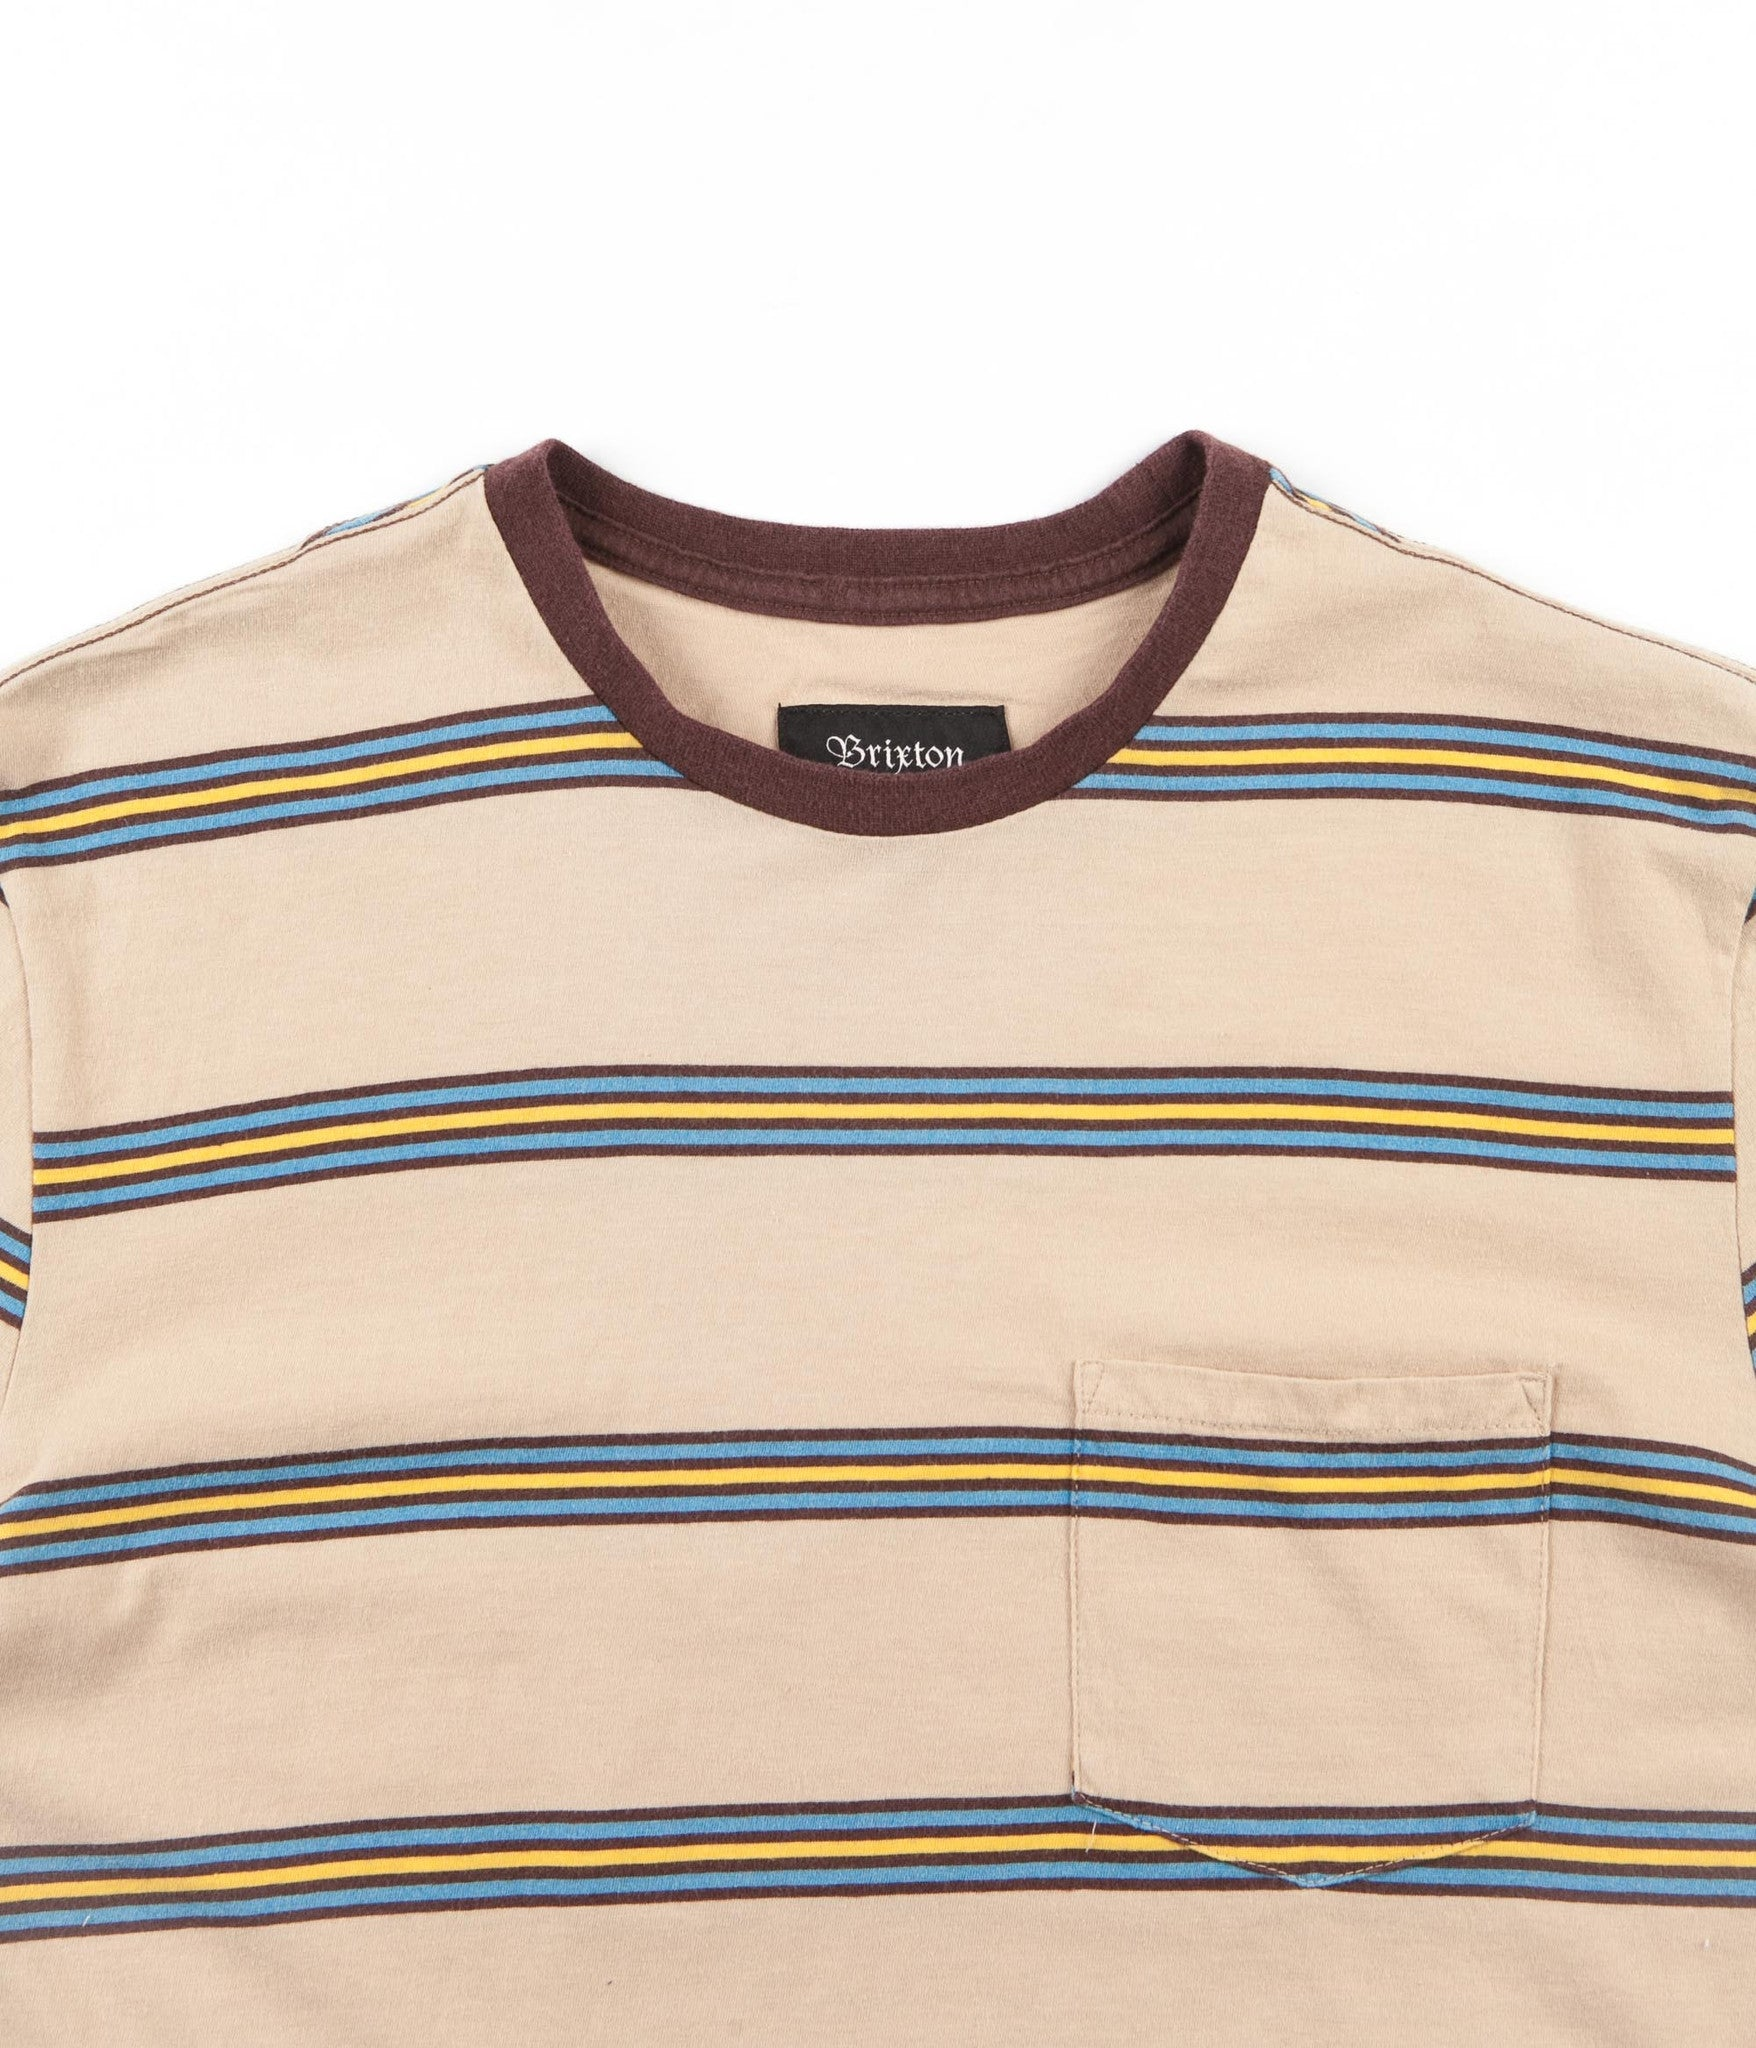 Brixton Hilt Washed Pocket T-Shirt - Sand